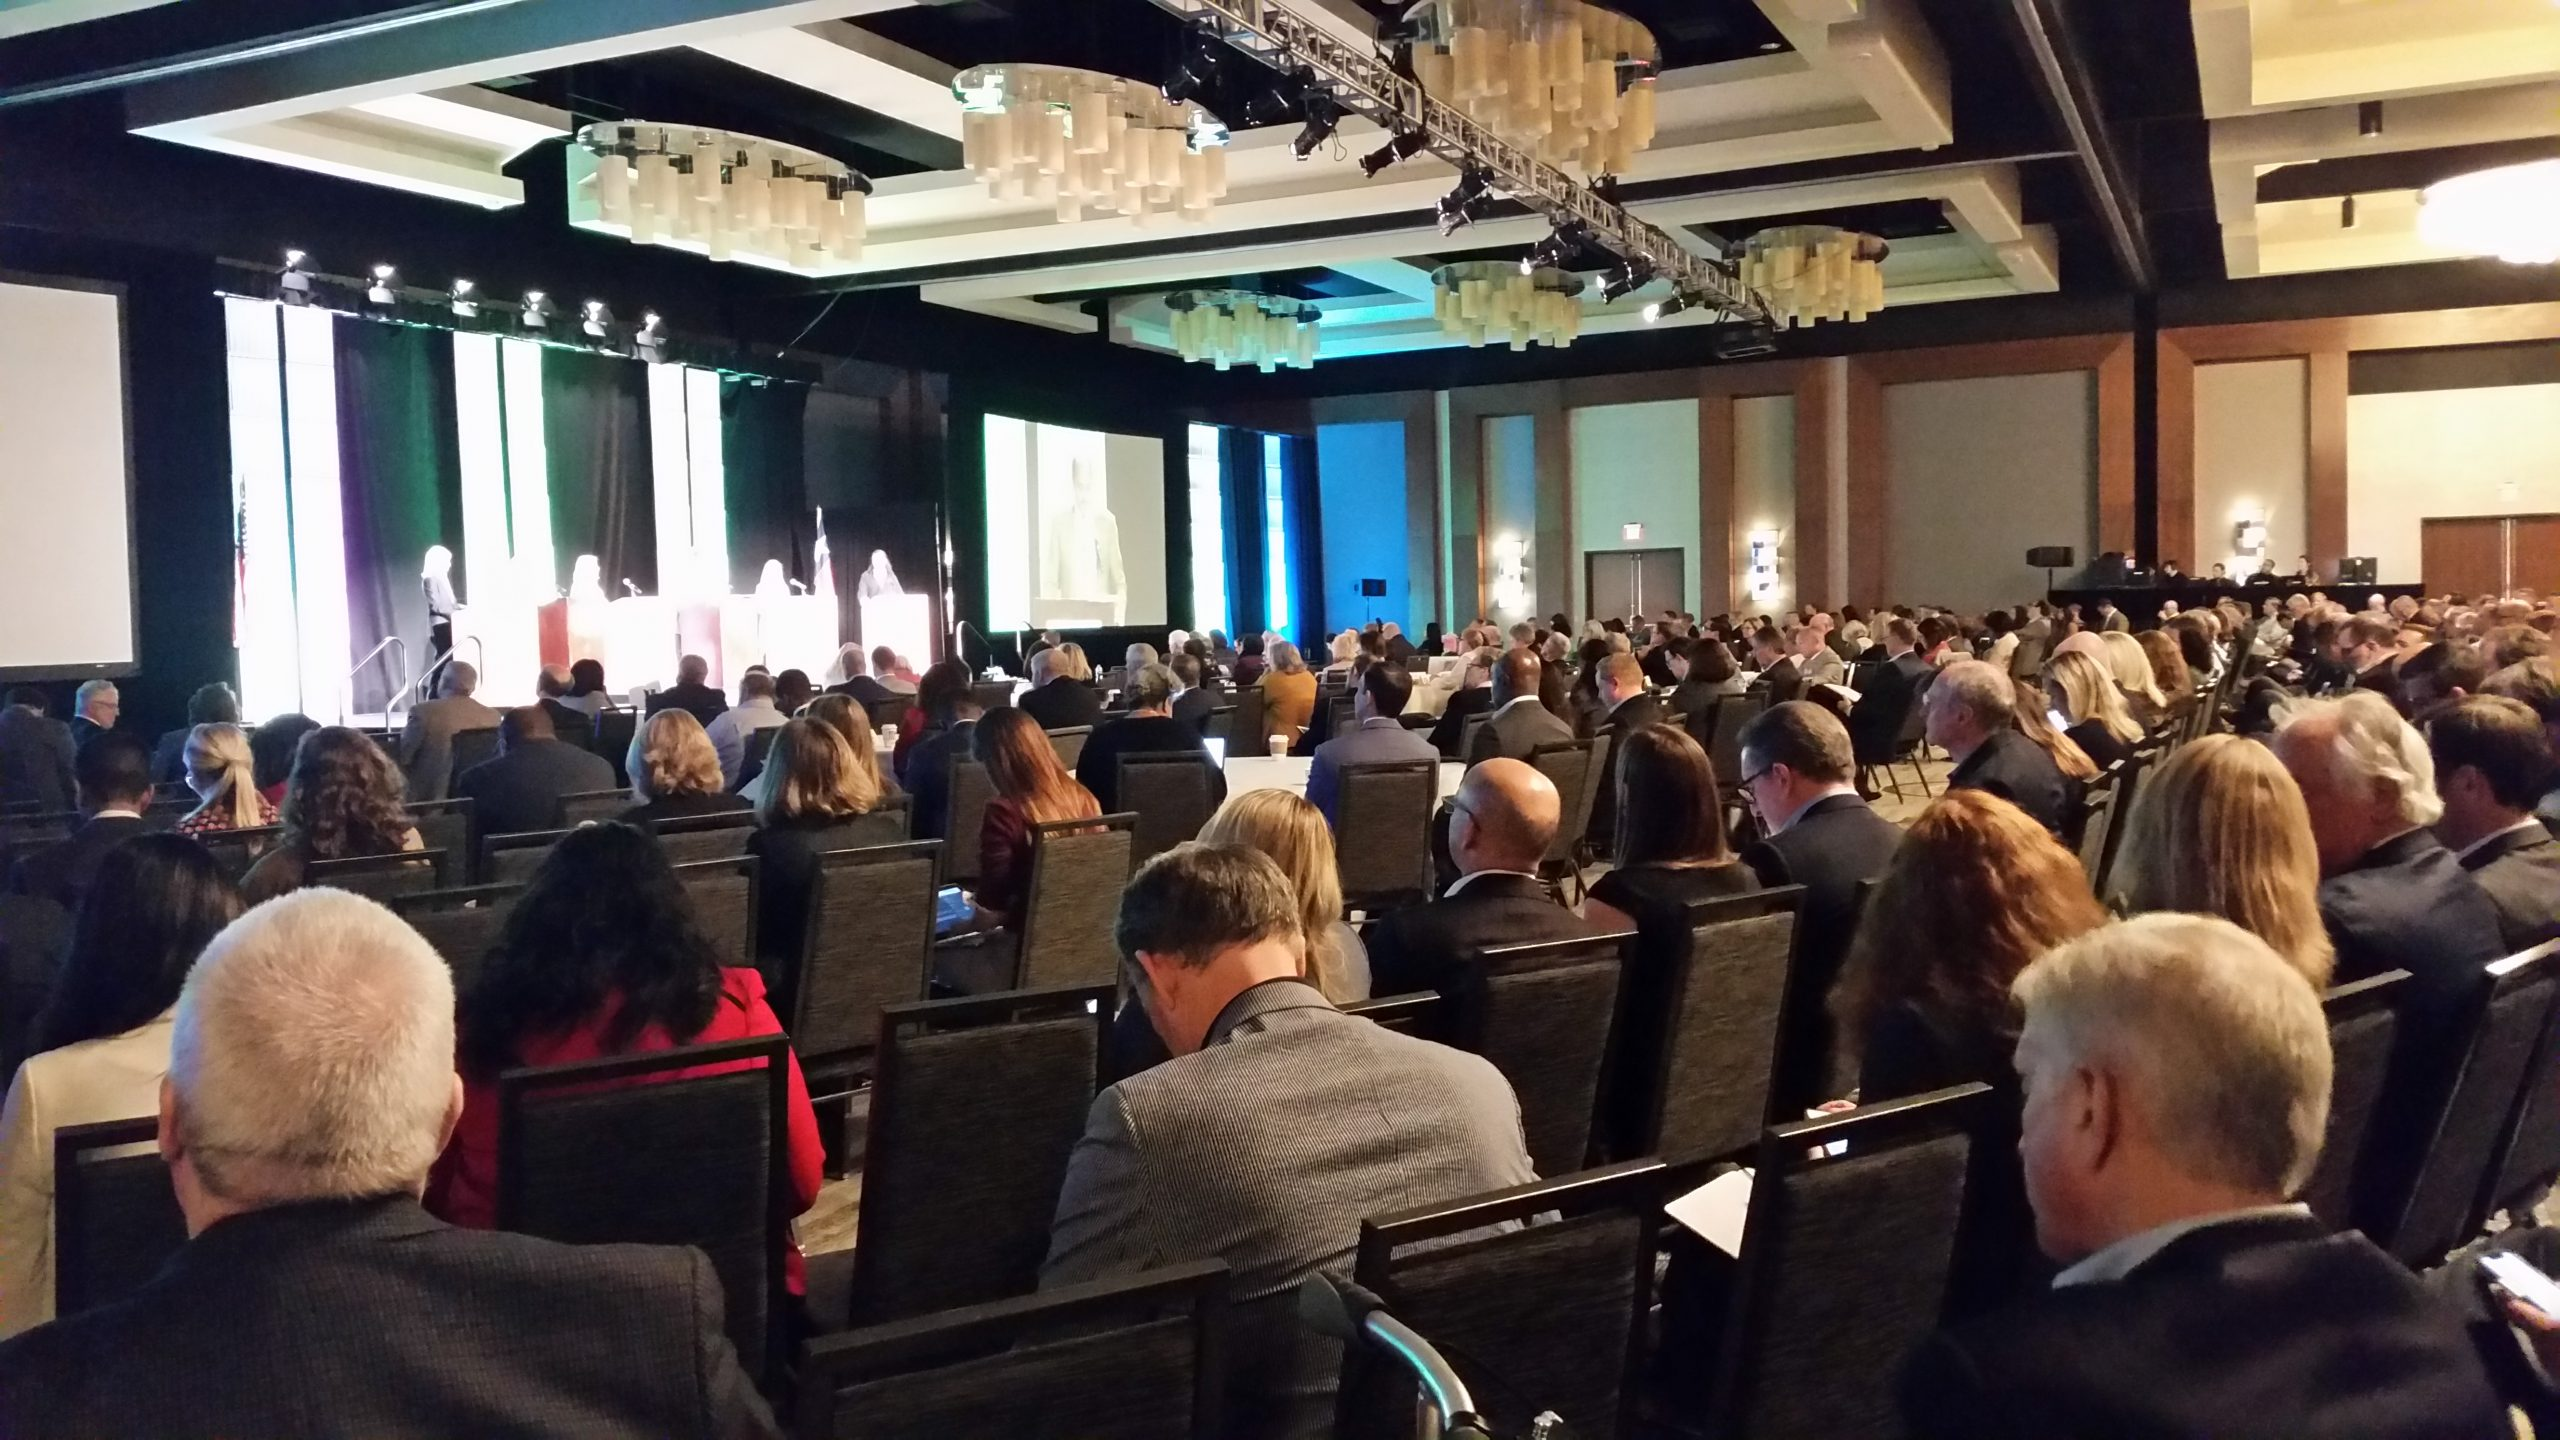 CTC Global sponsored and attended the 2019 National Association of Regulatory Utility Commissioners (NARUC) Annual Conference- 2560x1440px